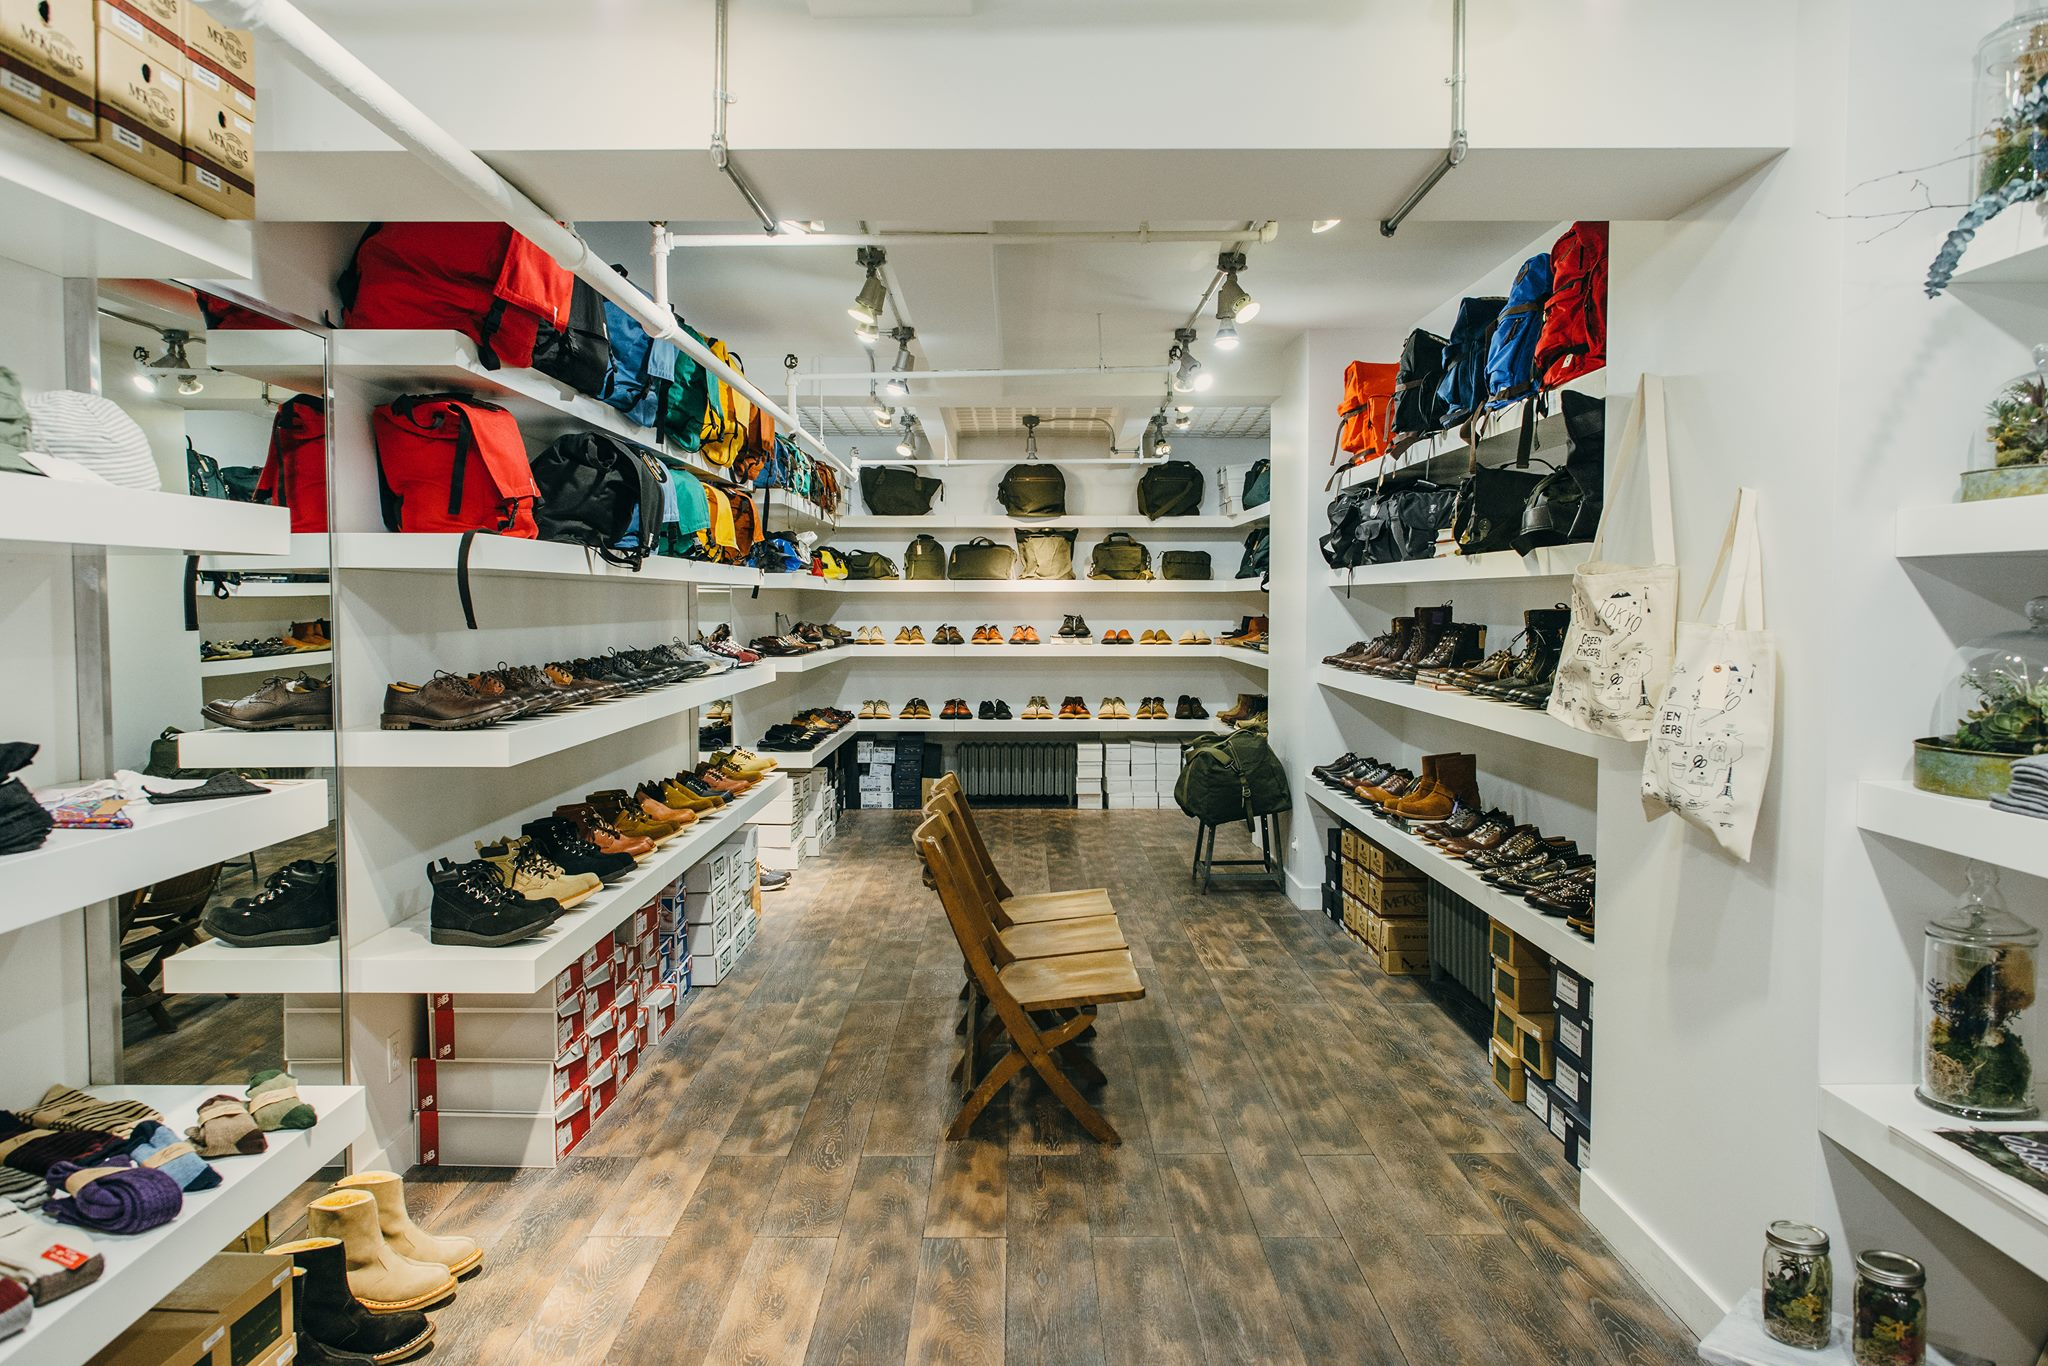 A neatly organised shop floor with shoes and bags